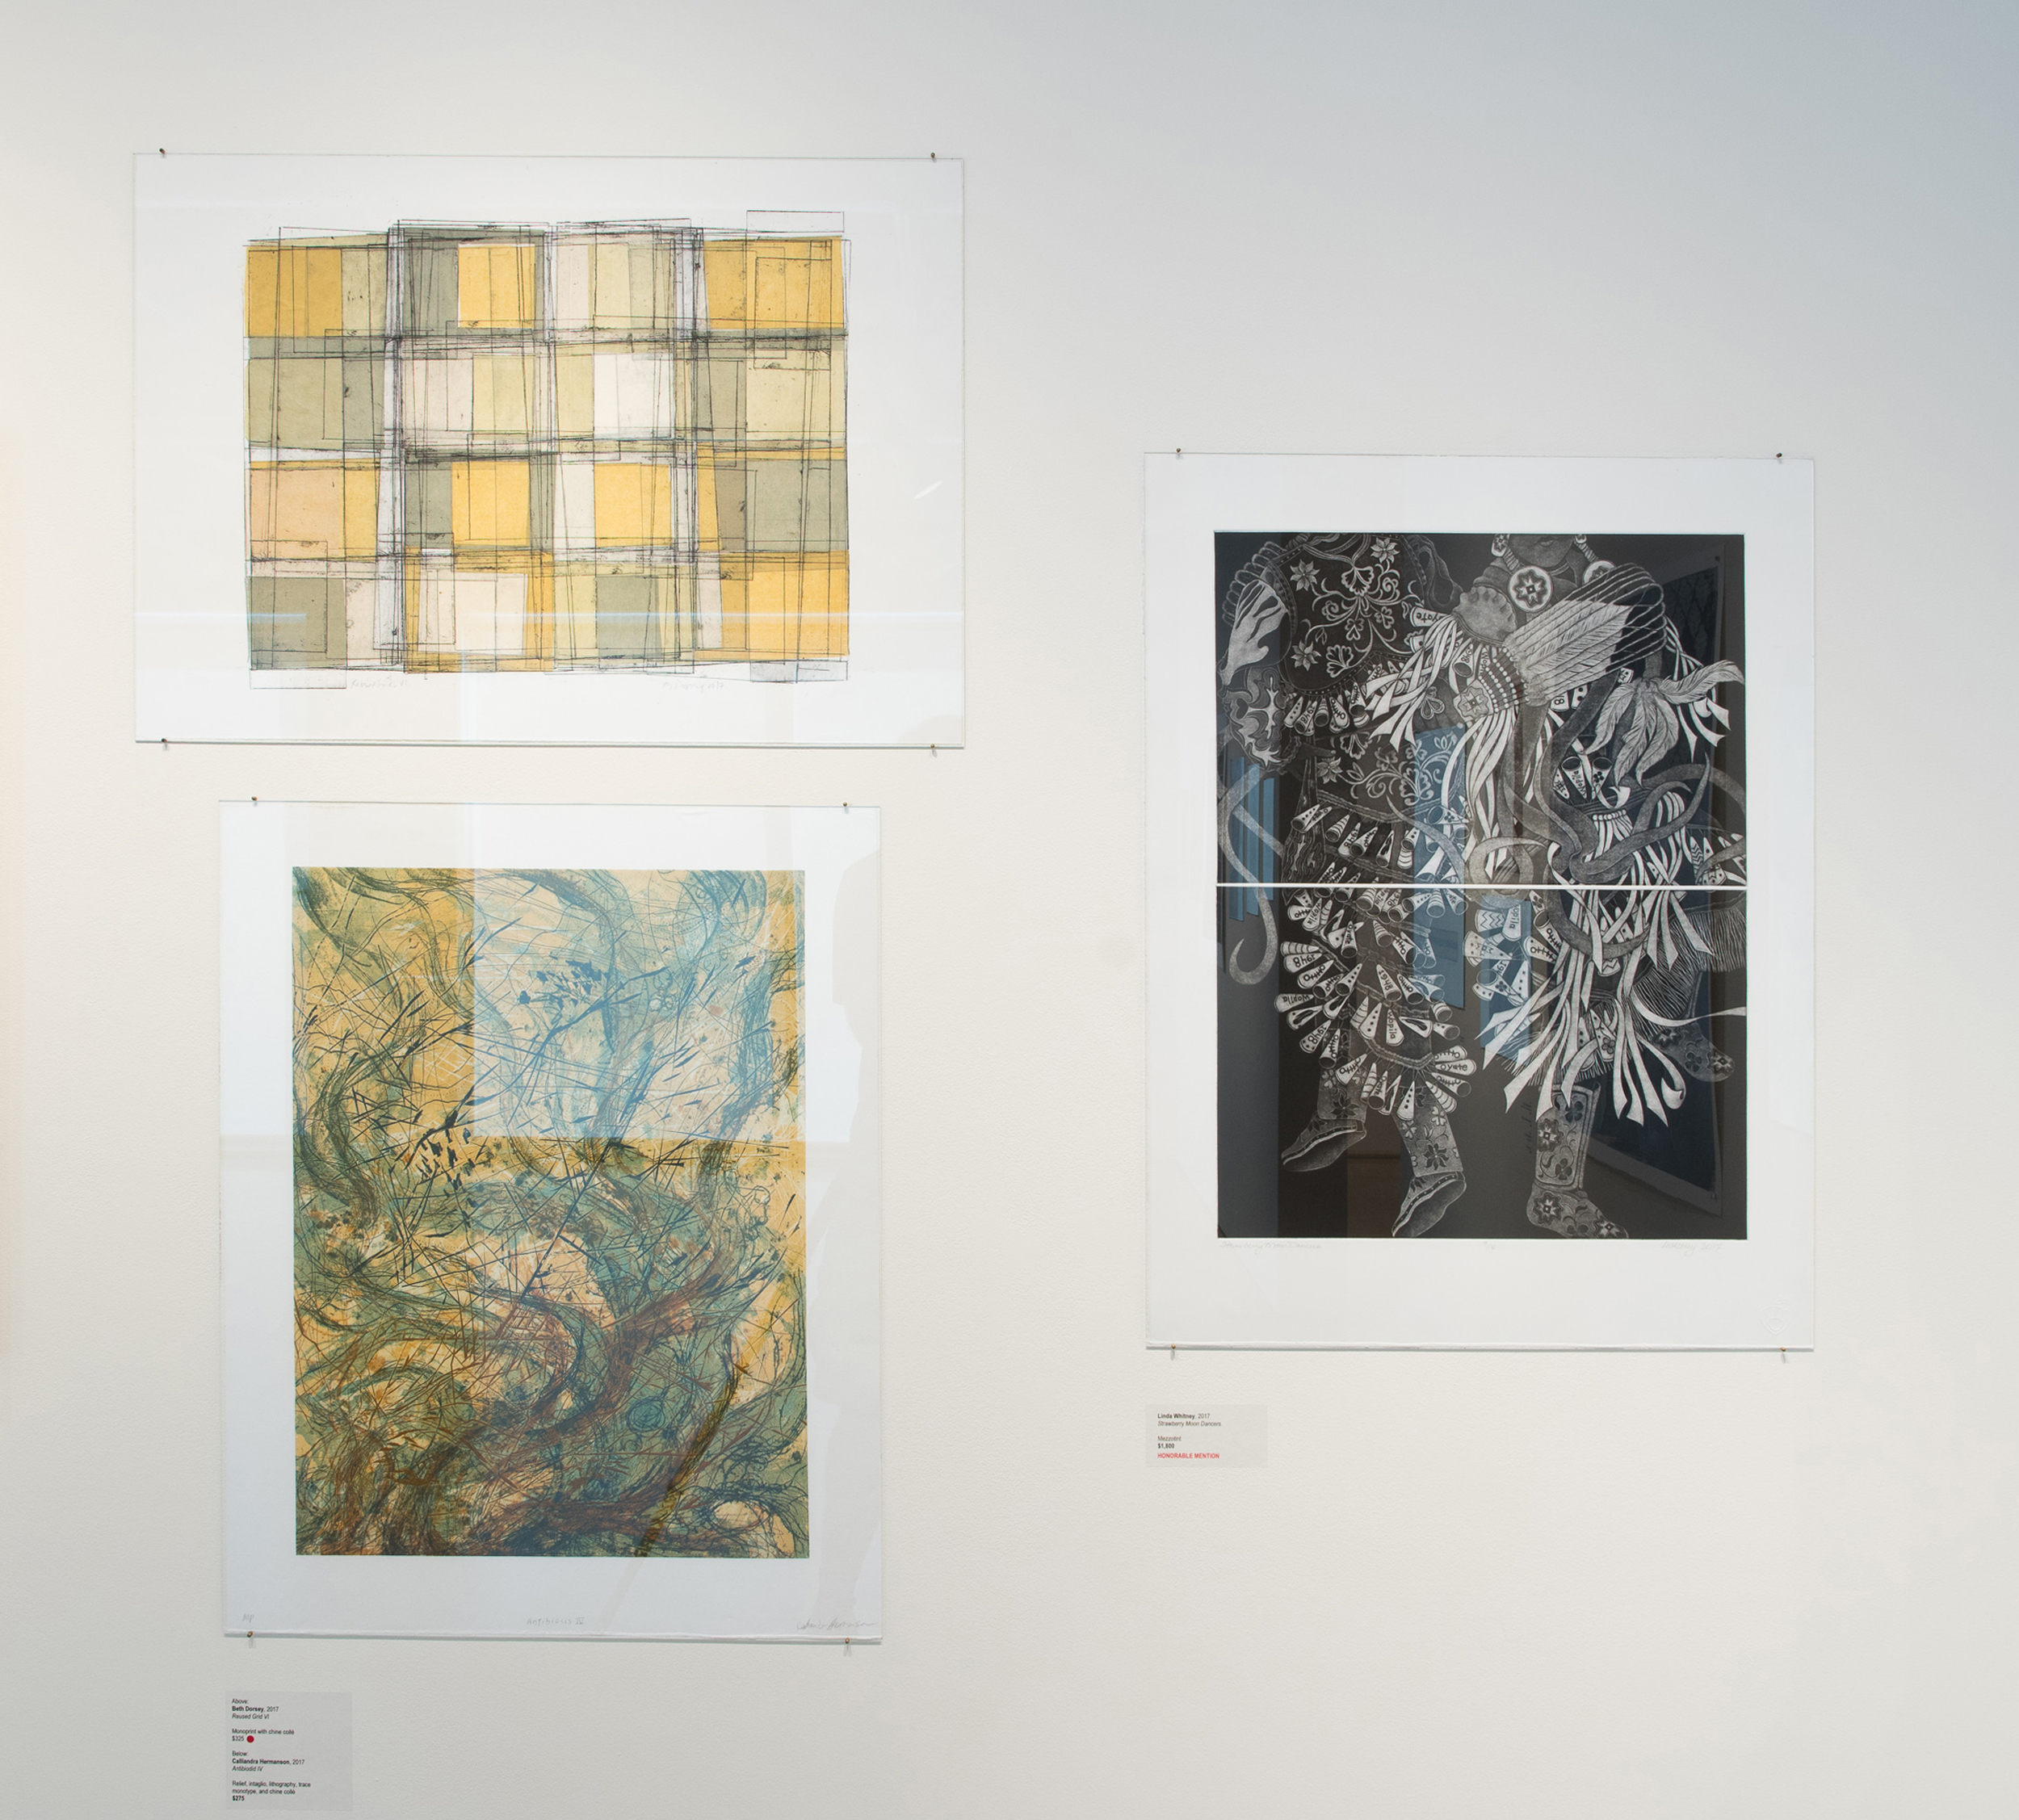 Highpoint PrintmakingStand Out Prints Exhibit180927a0314.JPG